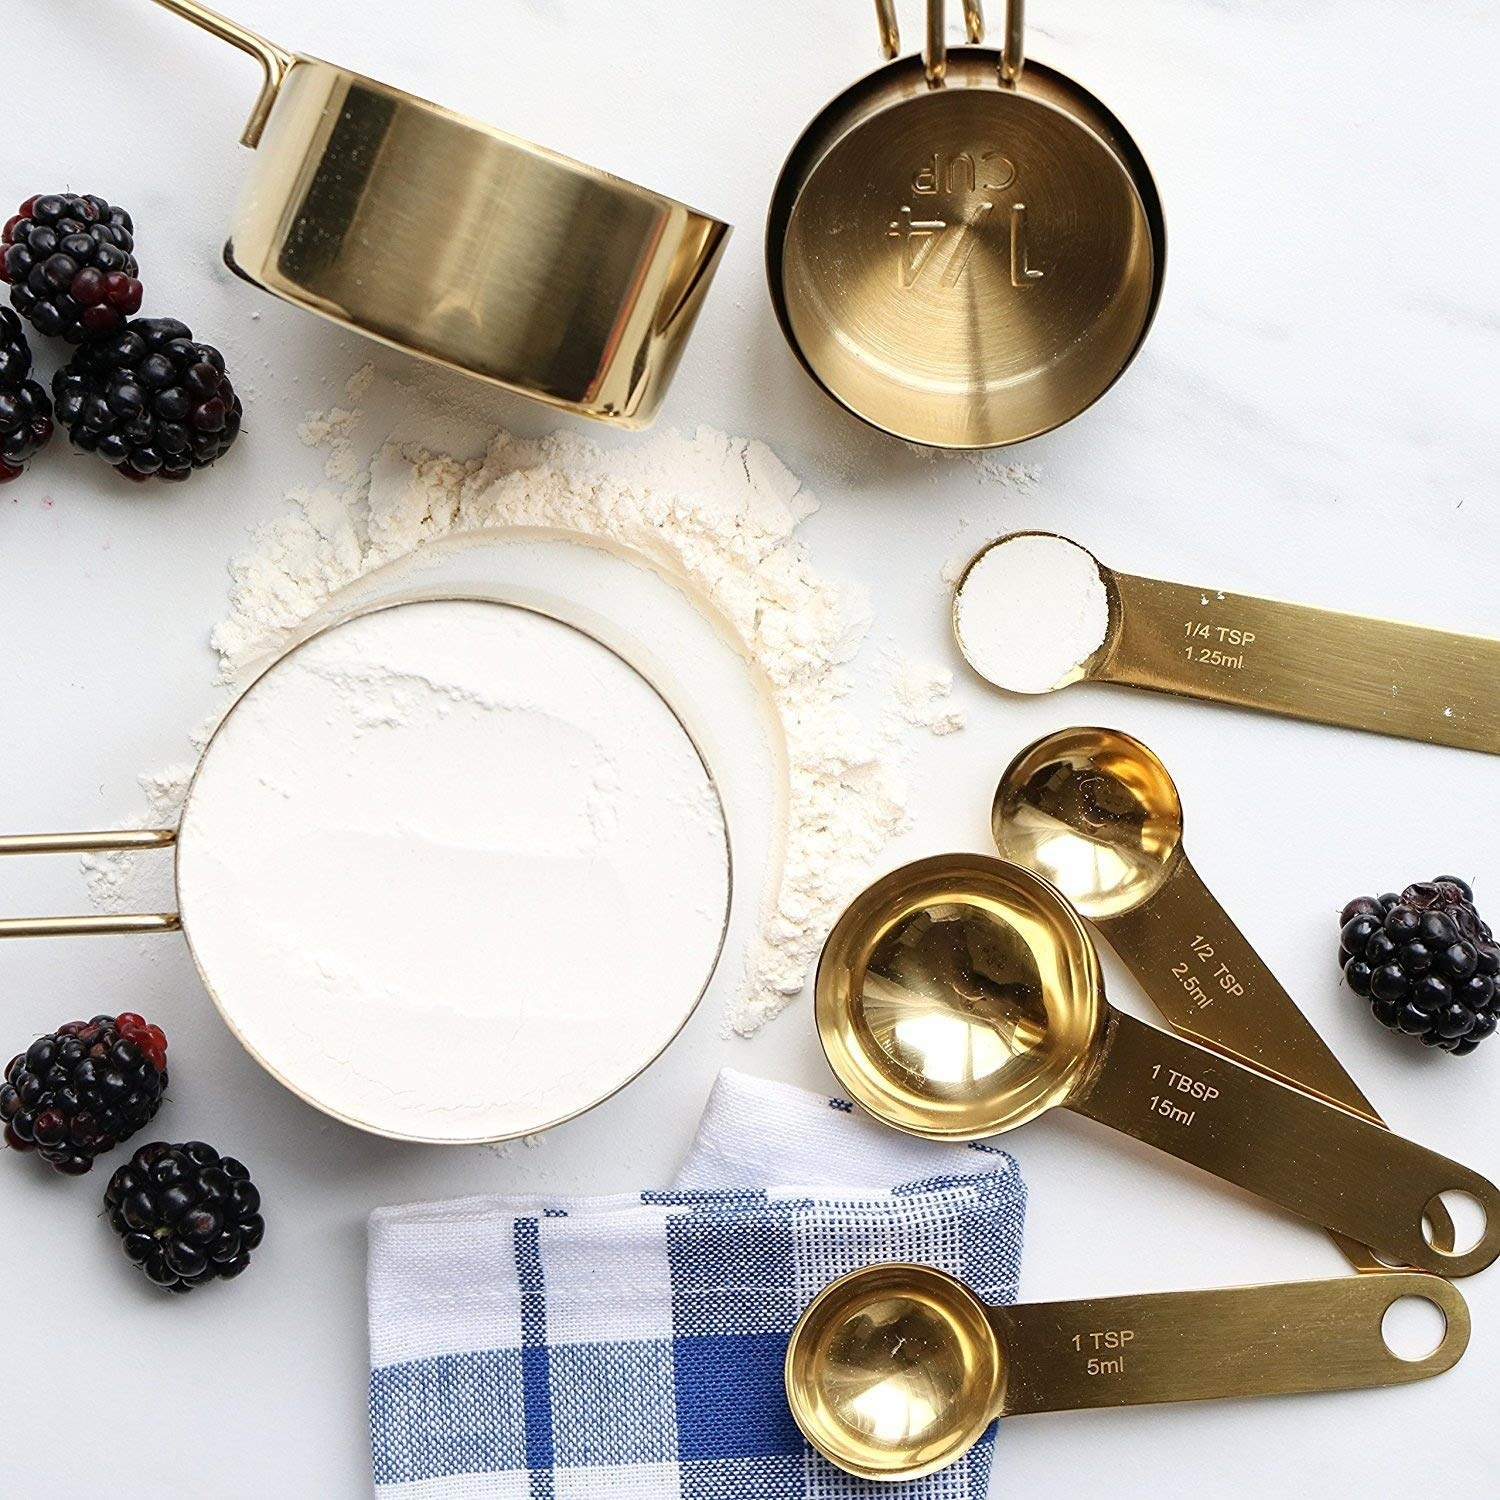 gold tone measuring cups with engraved sizes on them